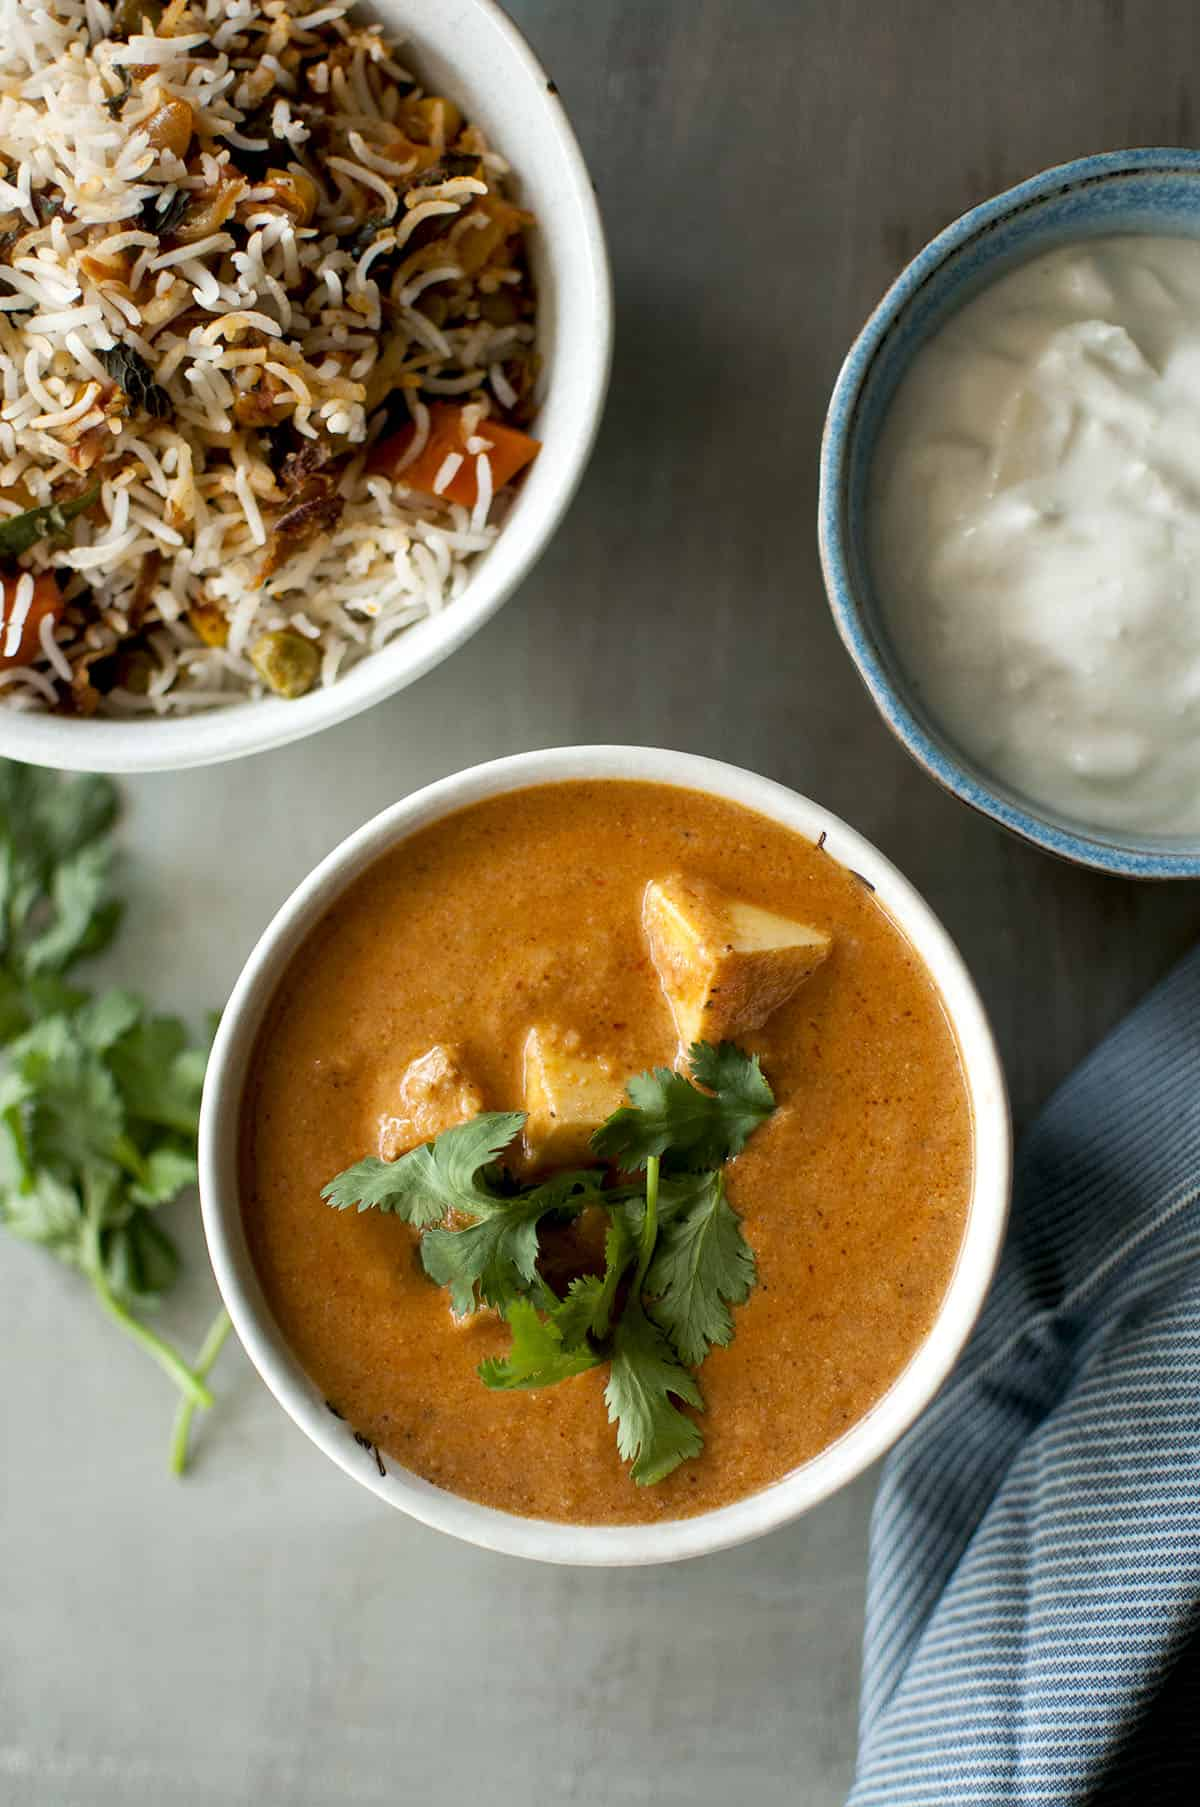 White bowl with paneer tikka masala with a rice pilaf and yogurt in the background